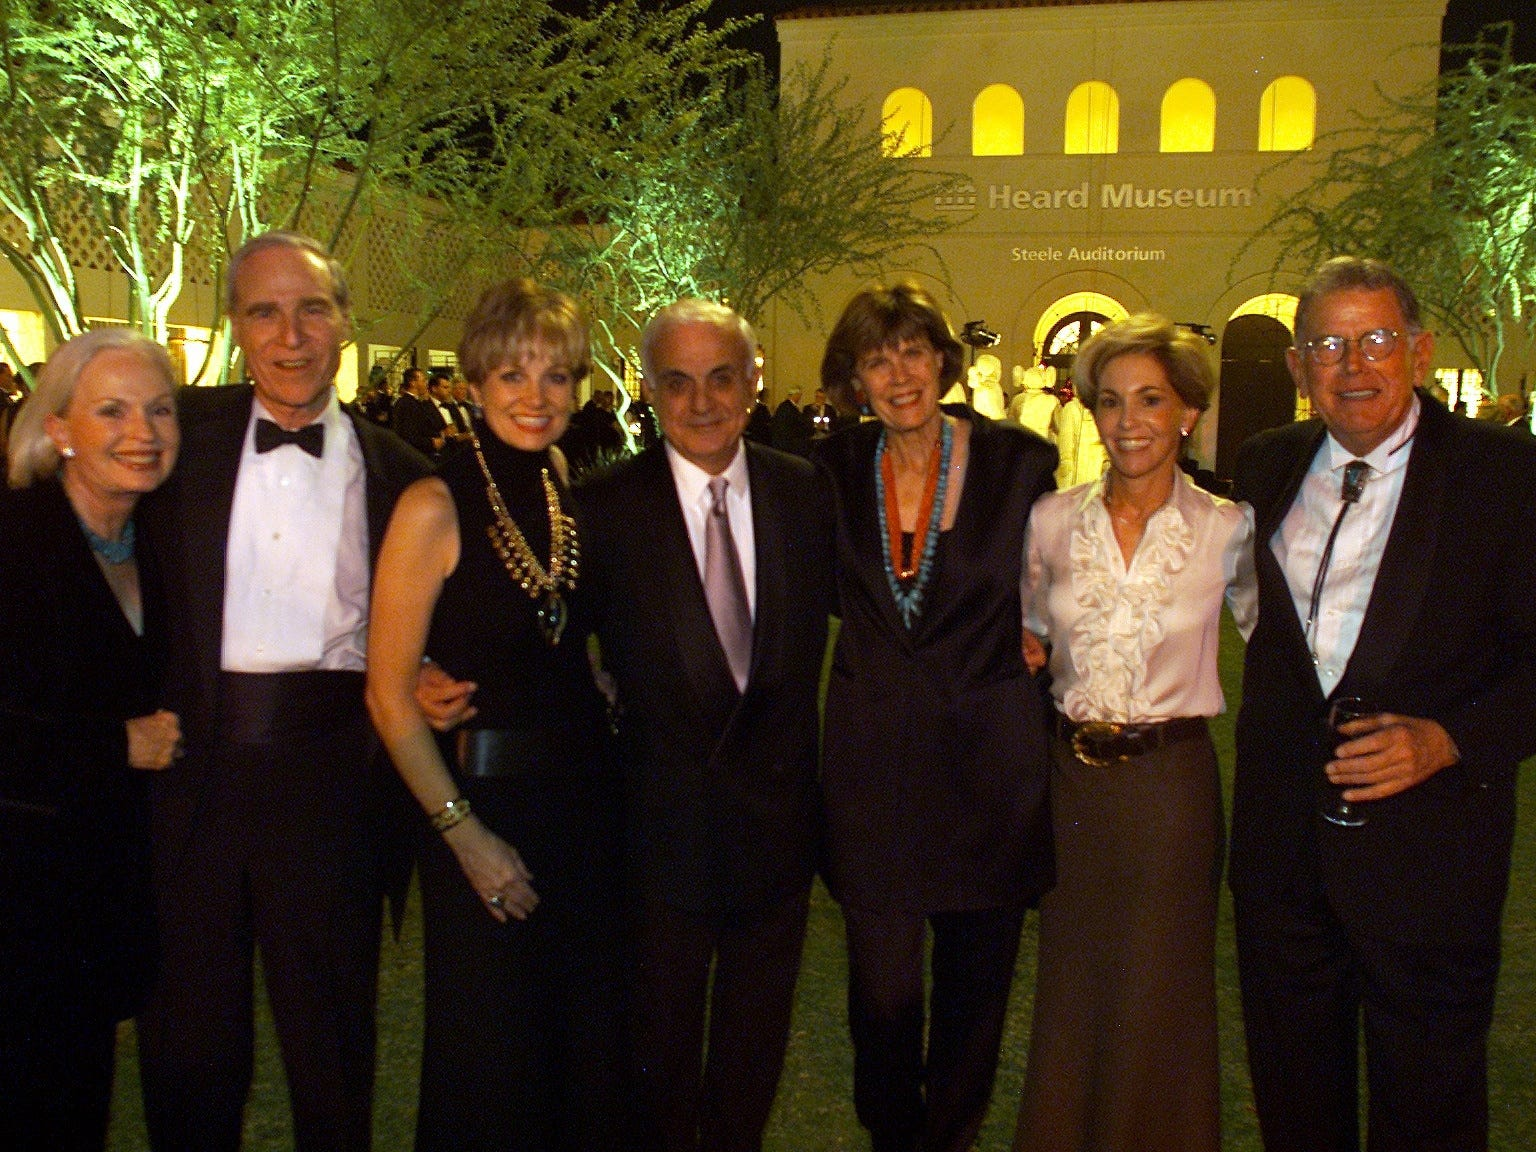 Janice Lyon, Karl Eller, Jamie Lendrum, Dan Cracchiolo, Pam Cracciolo, Harriet Friedland and Denny Lyon attending a fundraiser for the Heard Museum in Phoenix on Sept. 9, 2001.